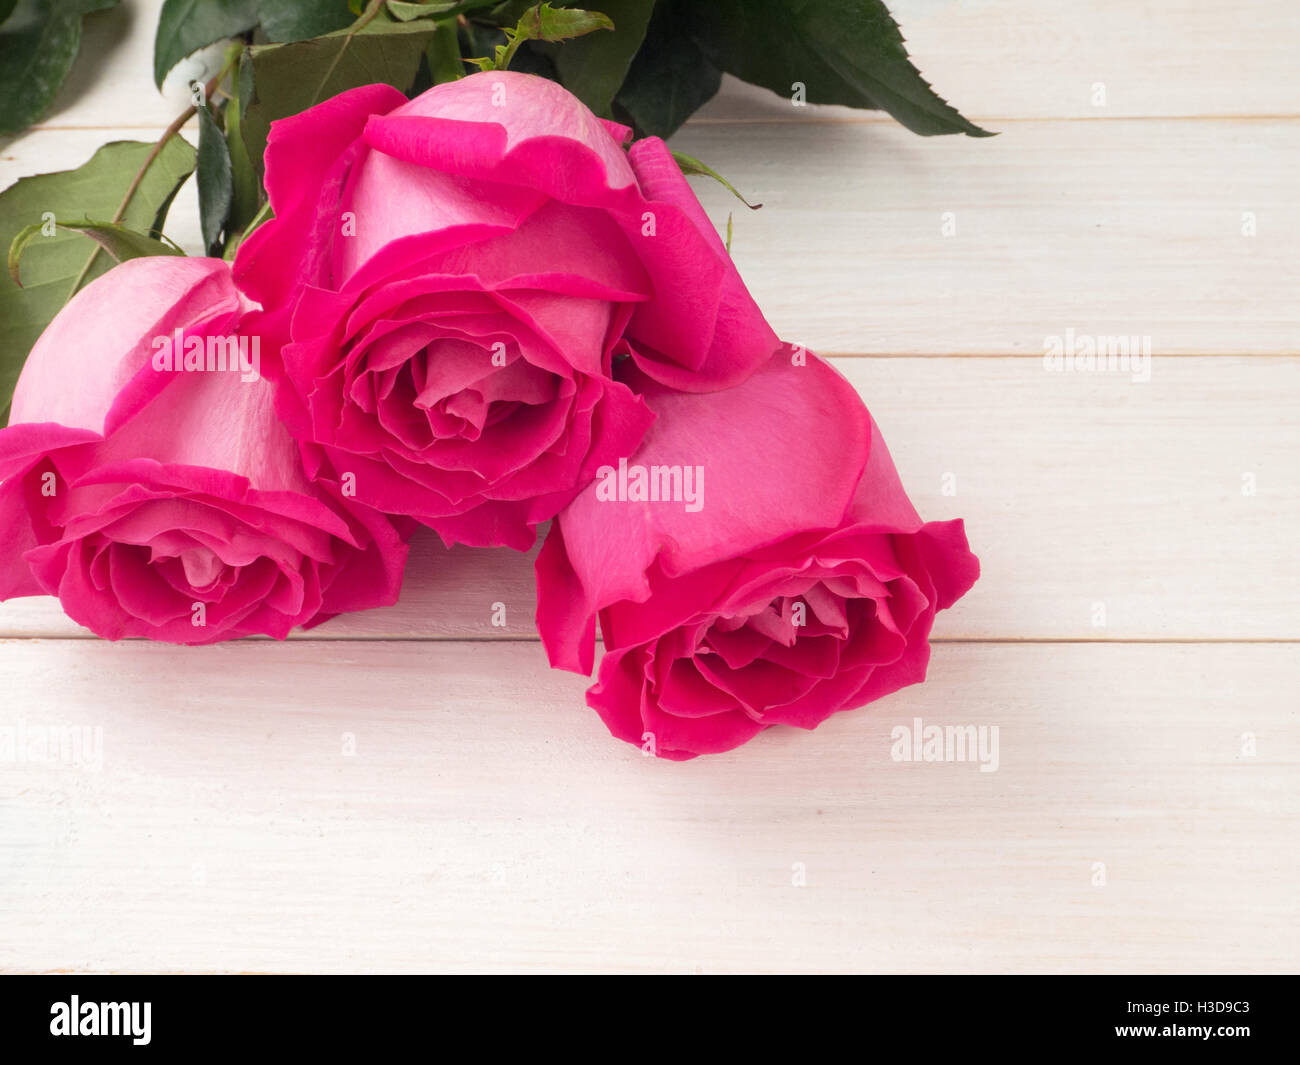 Three hybrid tea roses on the planks background - Stock Image